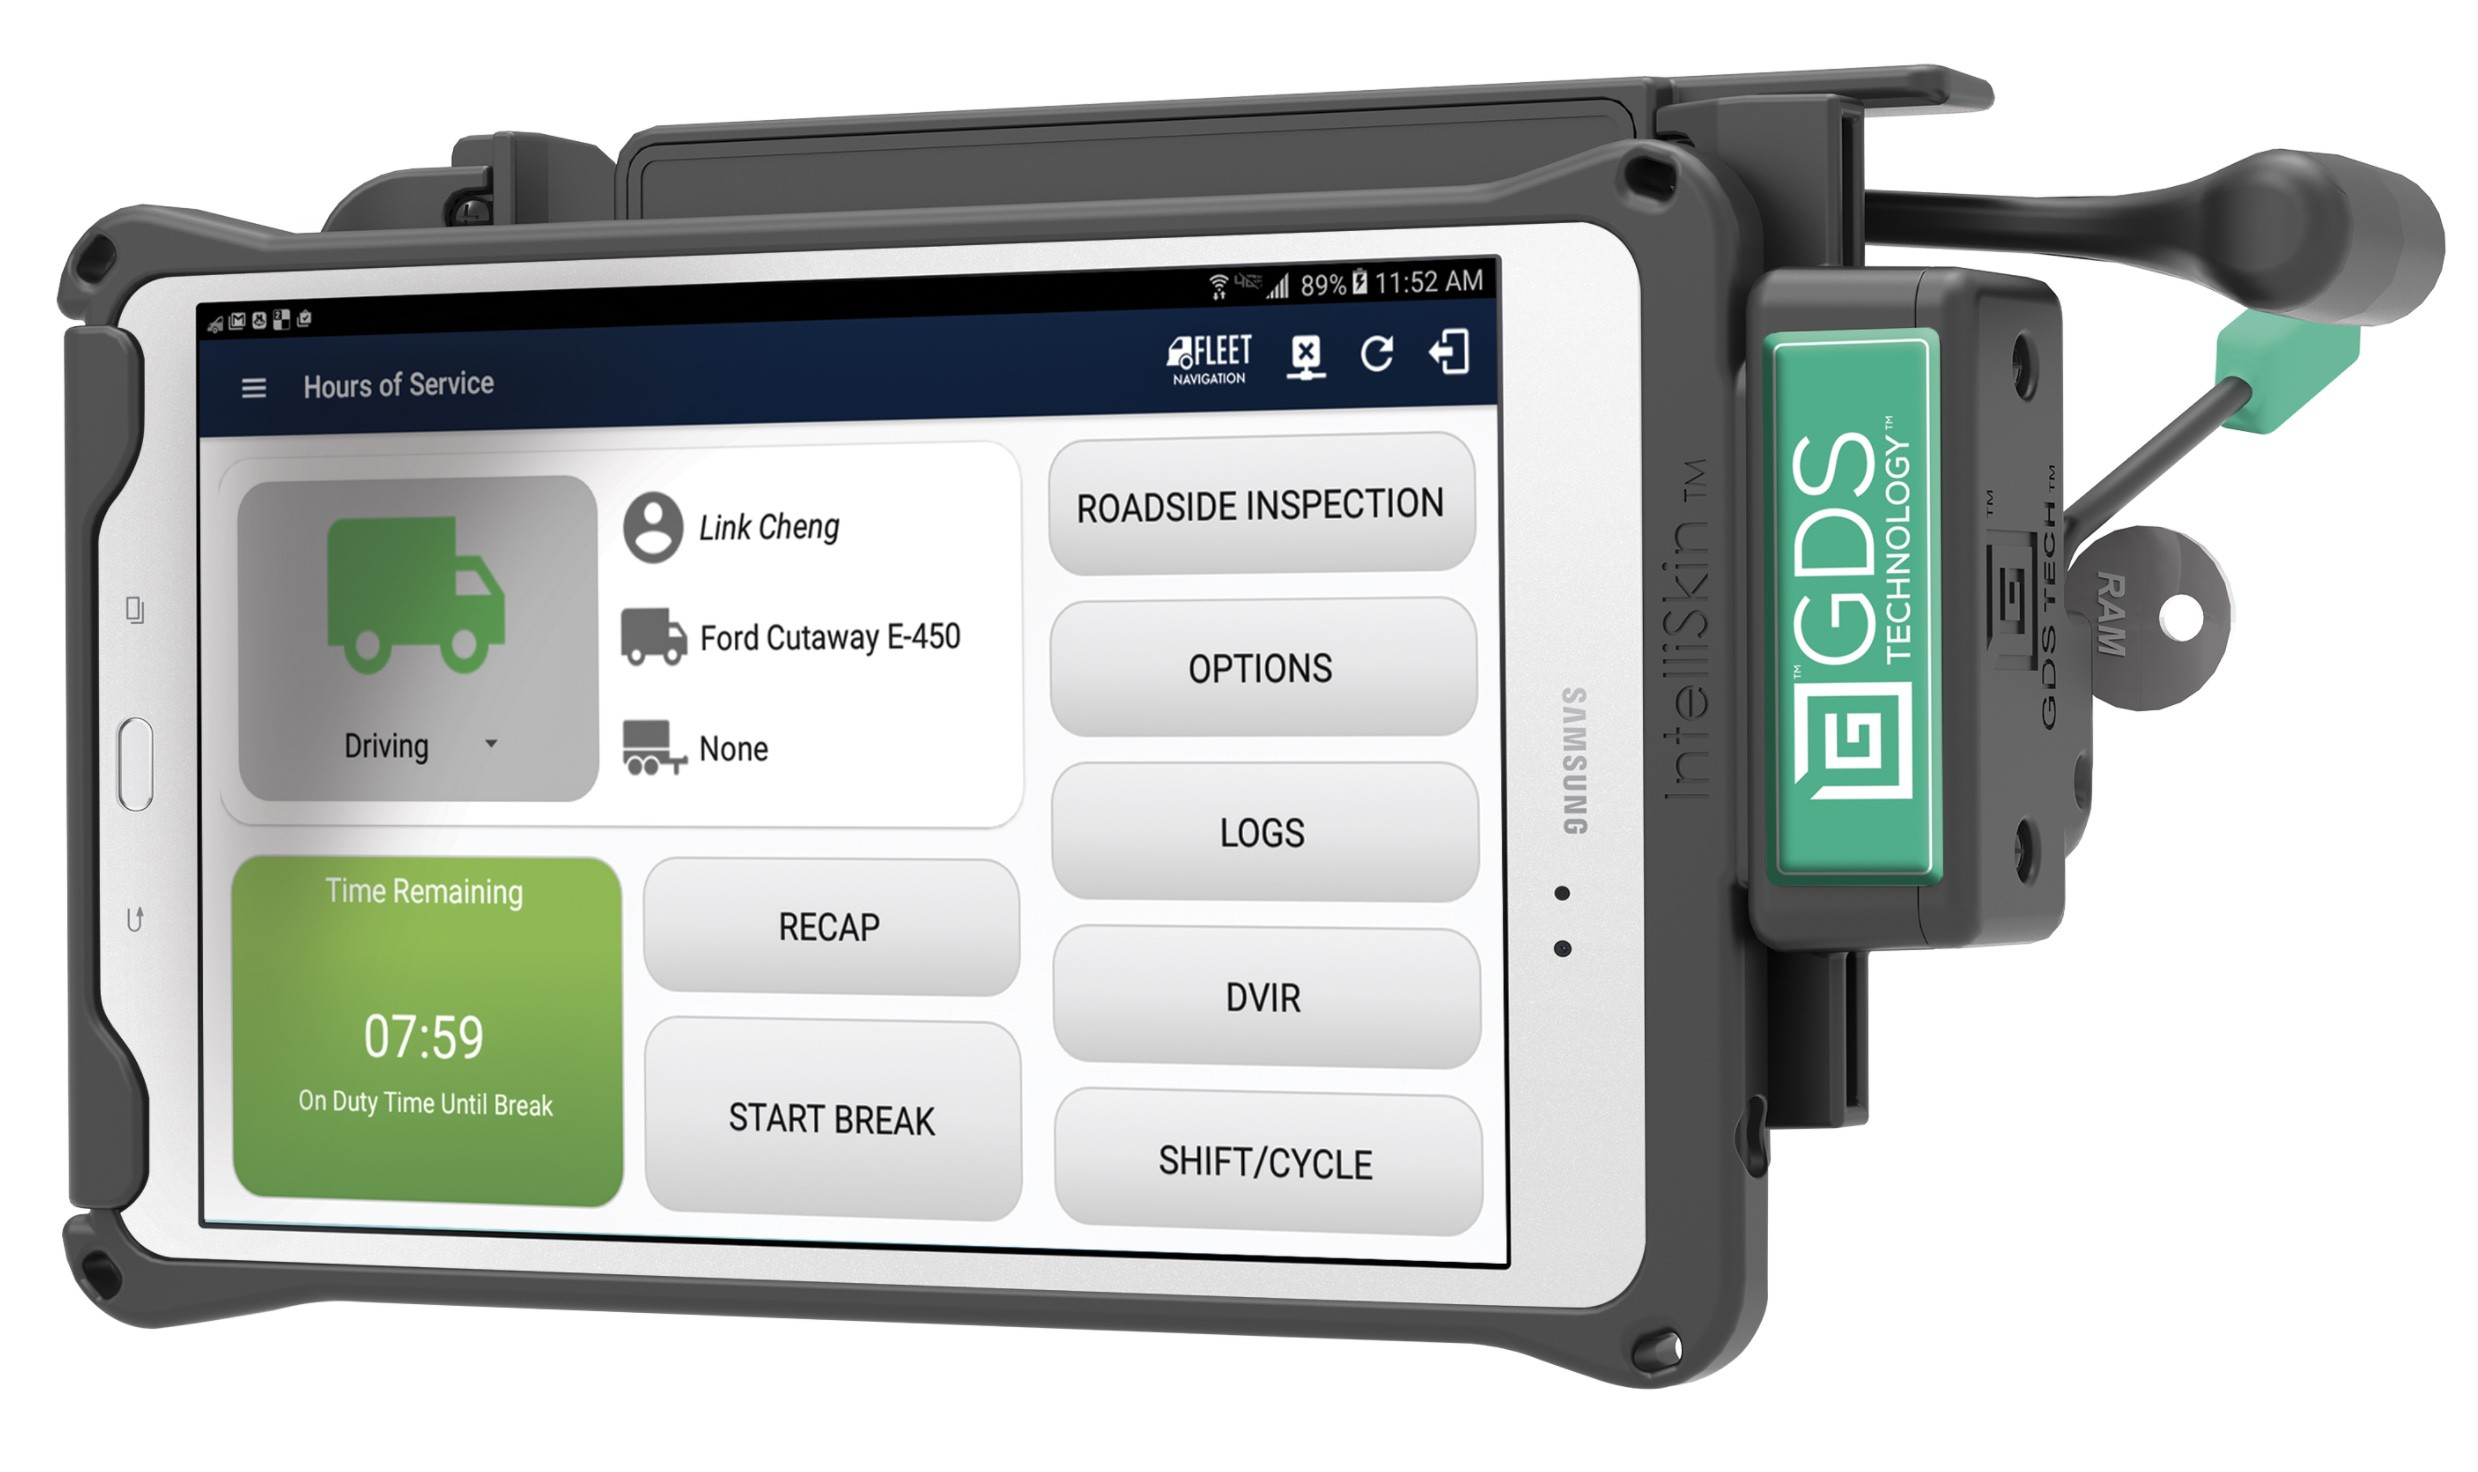 Magellan eld self certified built with samsung for Federal motor carrier phone number